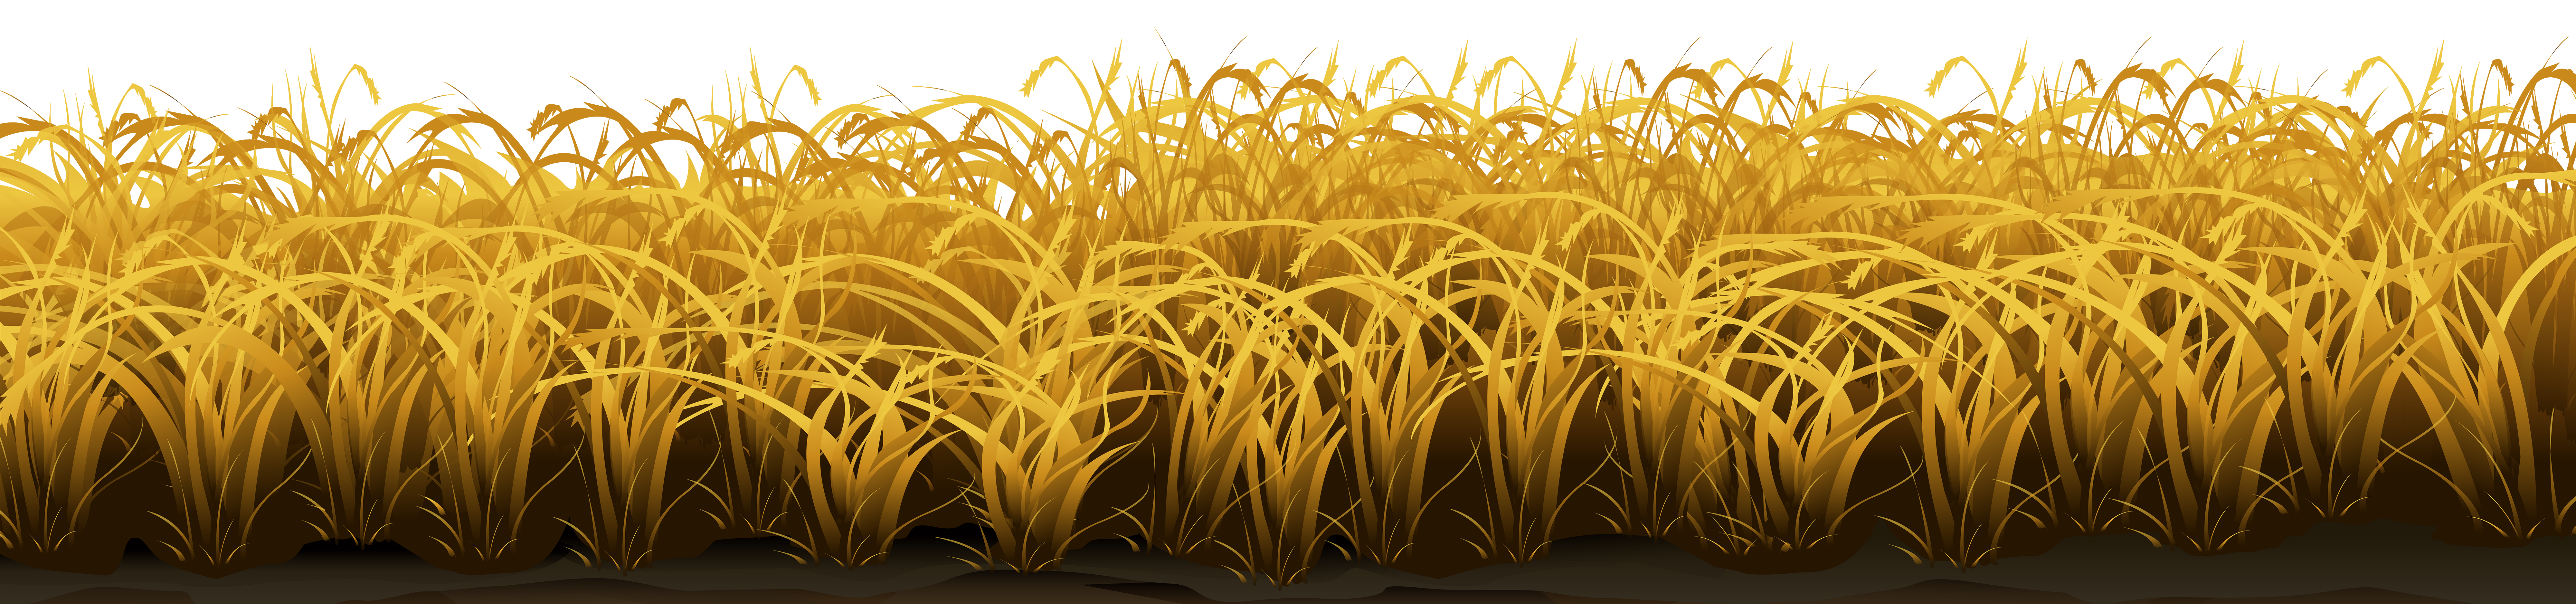 png free Wheat field clipart. Png loadtve